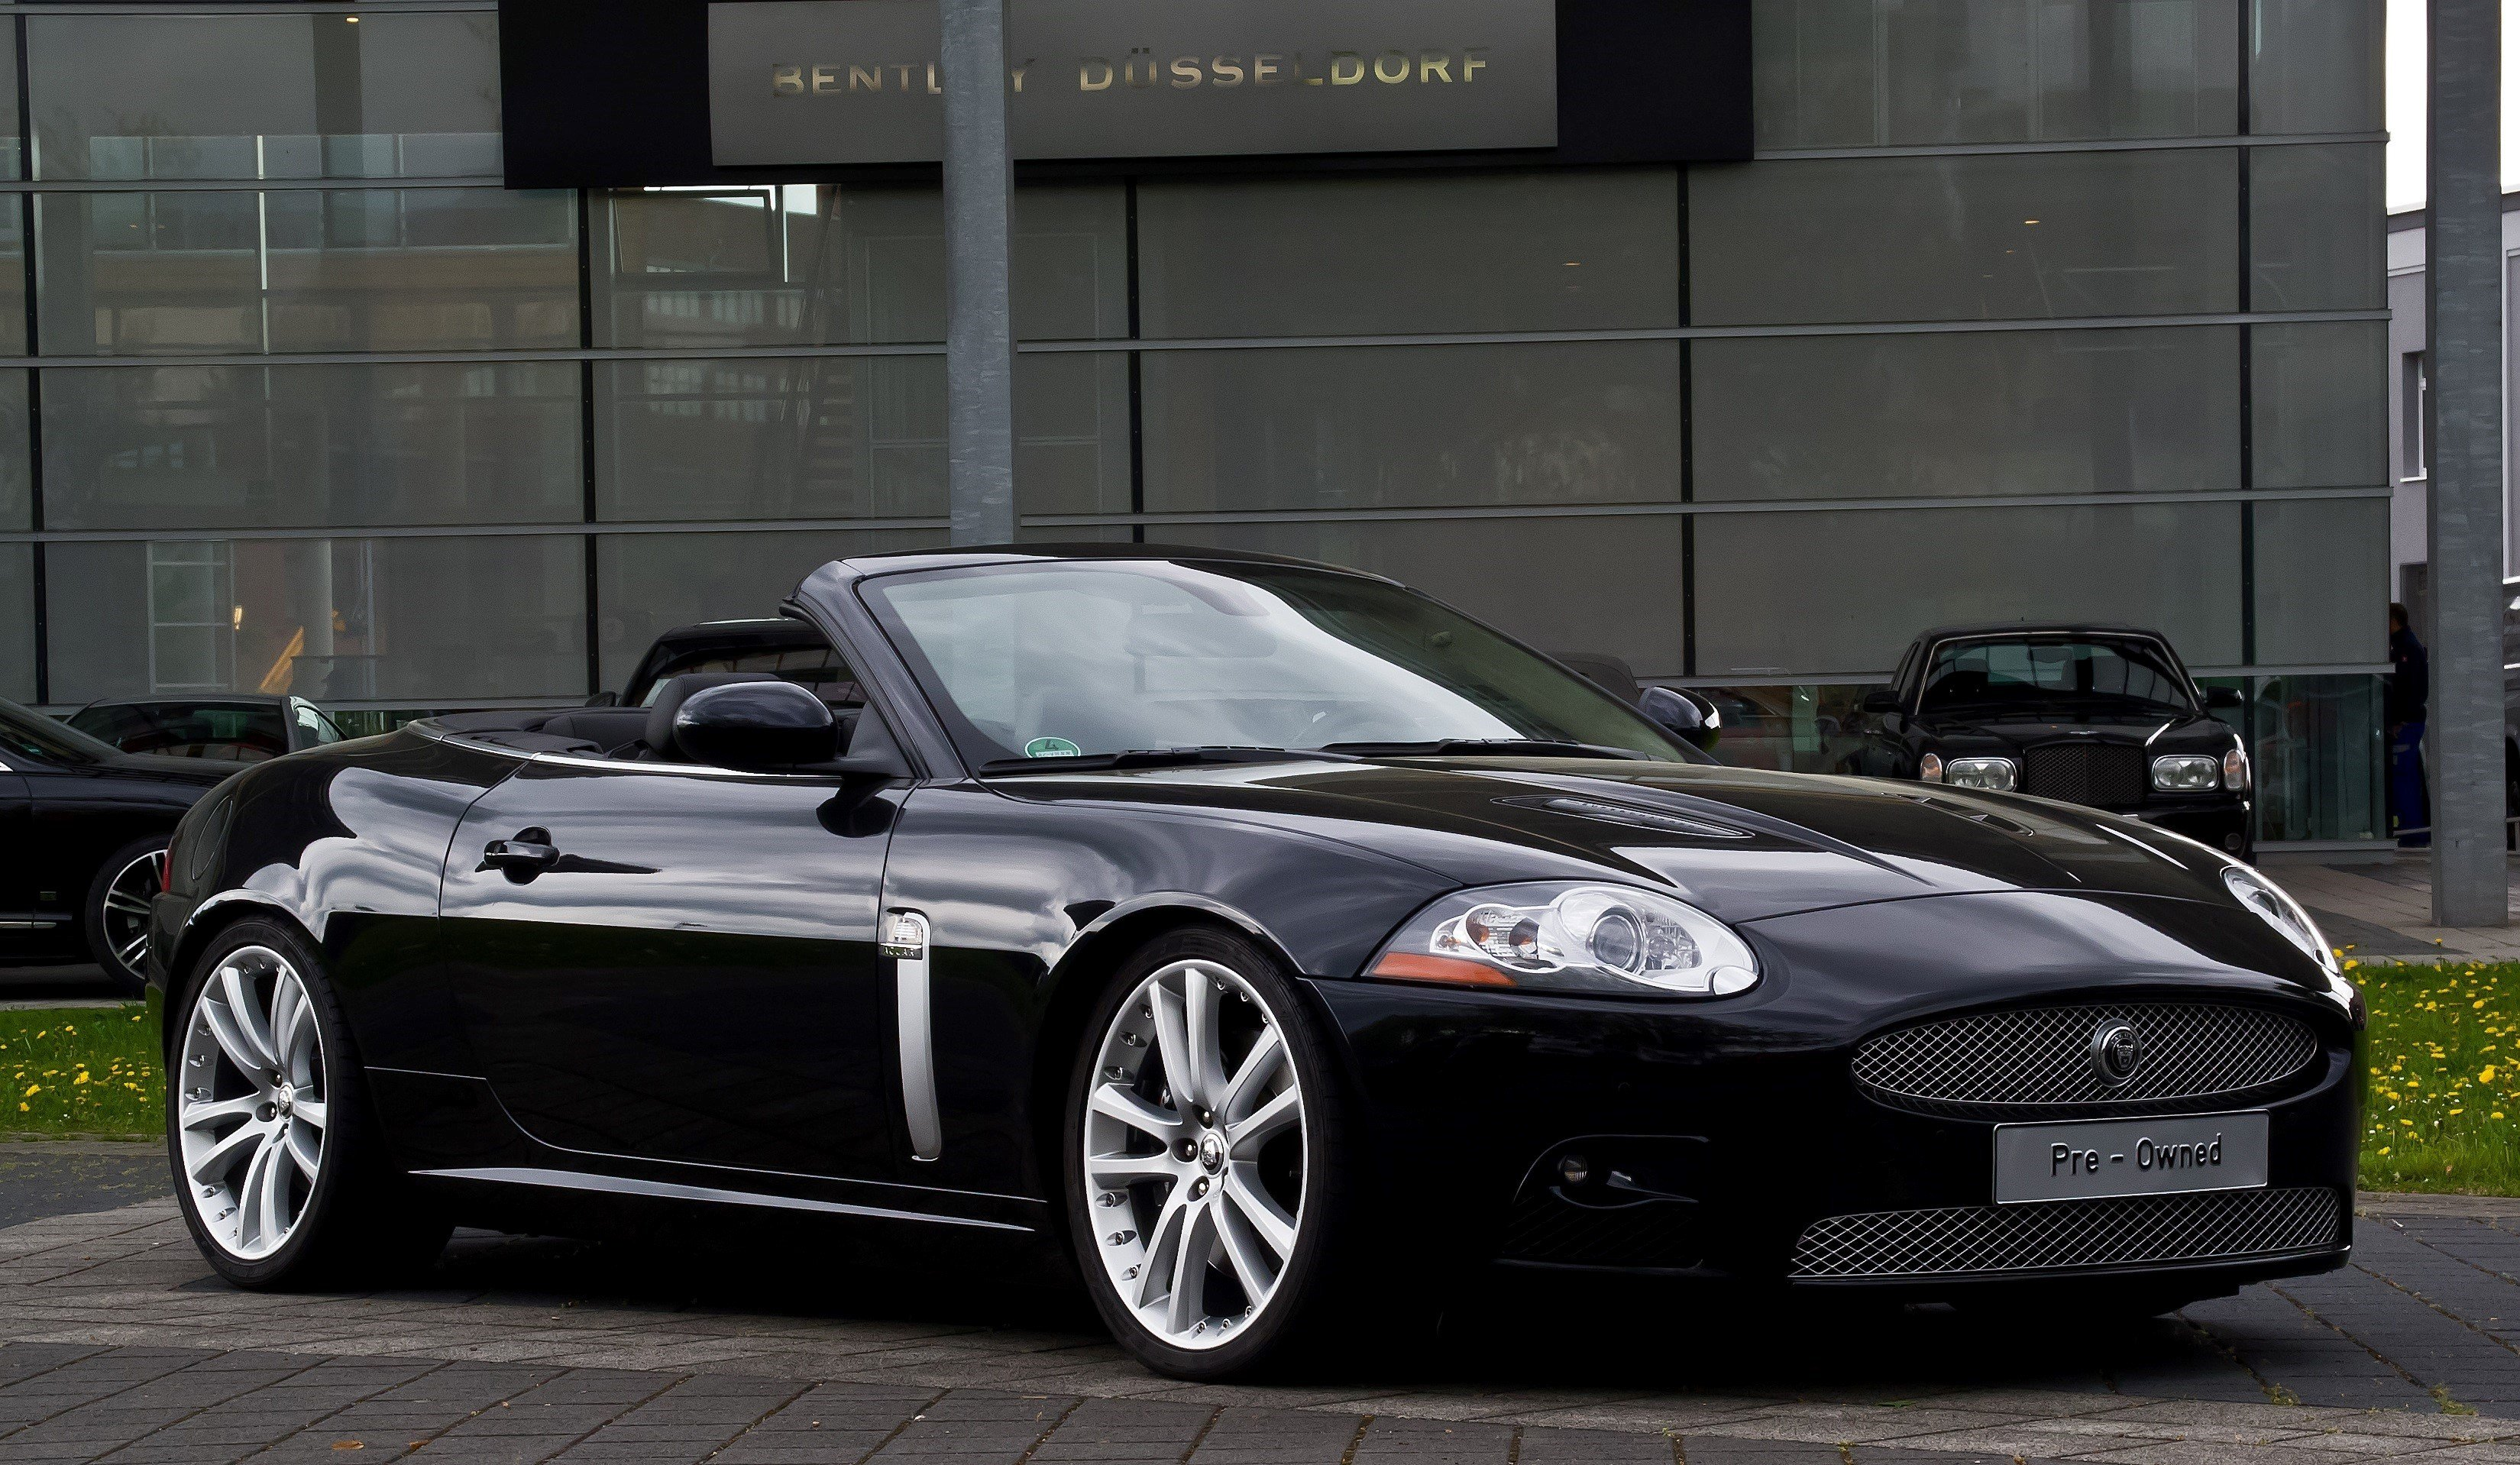 Latest Black Cabriolet Jaguar Luxury Convertible Car On Road Free Download